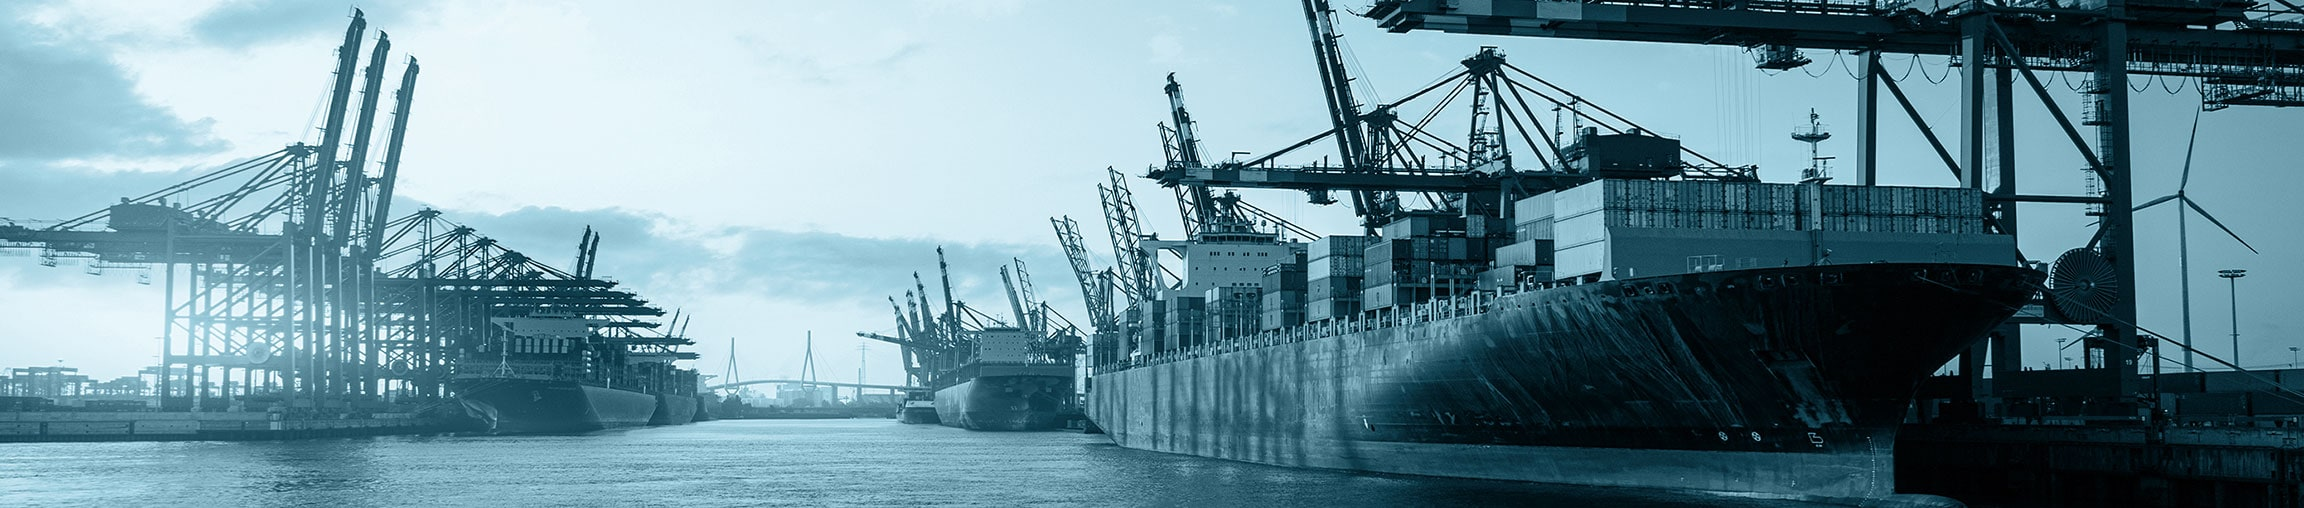 Port of Hamburg with Köhlbrand Bridge and container ships as a symbol for the Feddersen Group's overseas trade